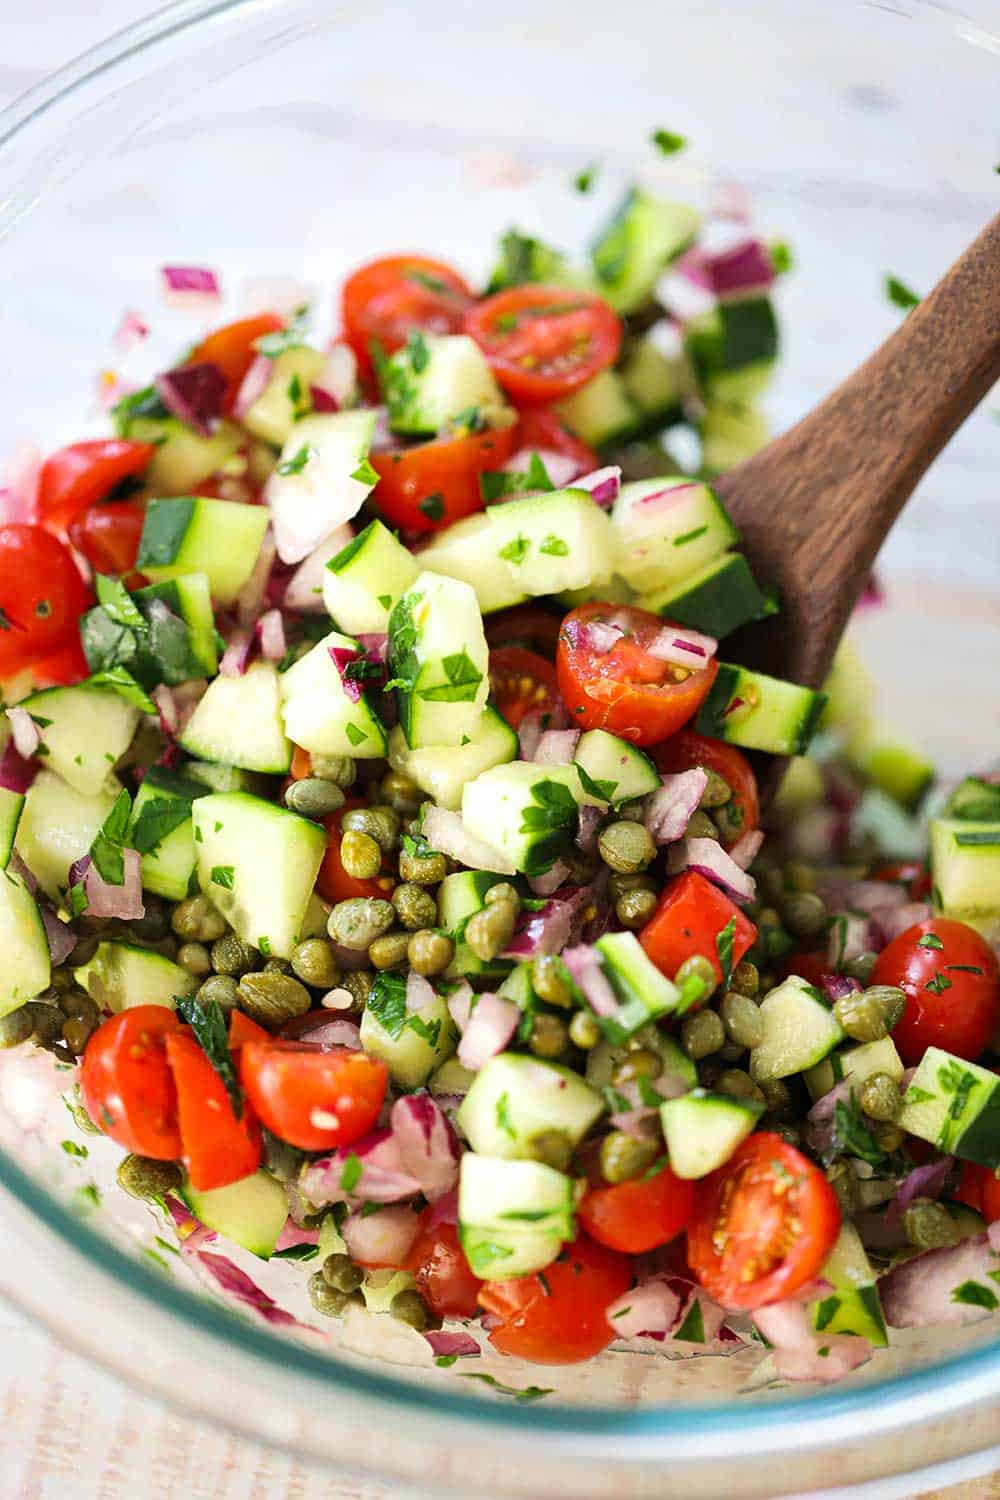 A glass bowl containing a mix of chopped tomatoes, cucumbers, capers, olives, and herbs with a wooden spoon in the middle of it.